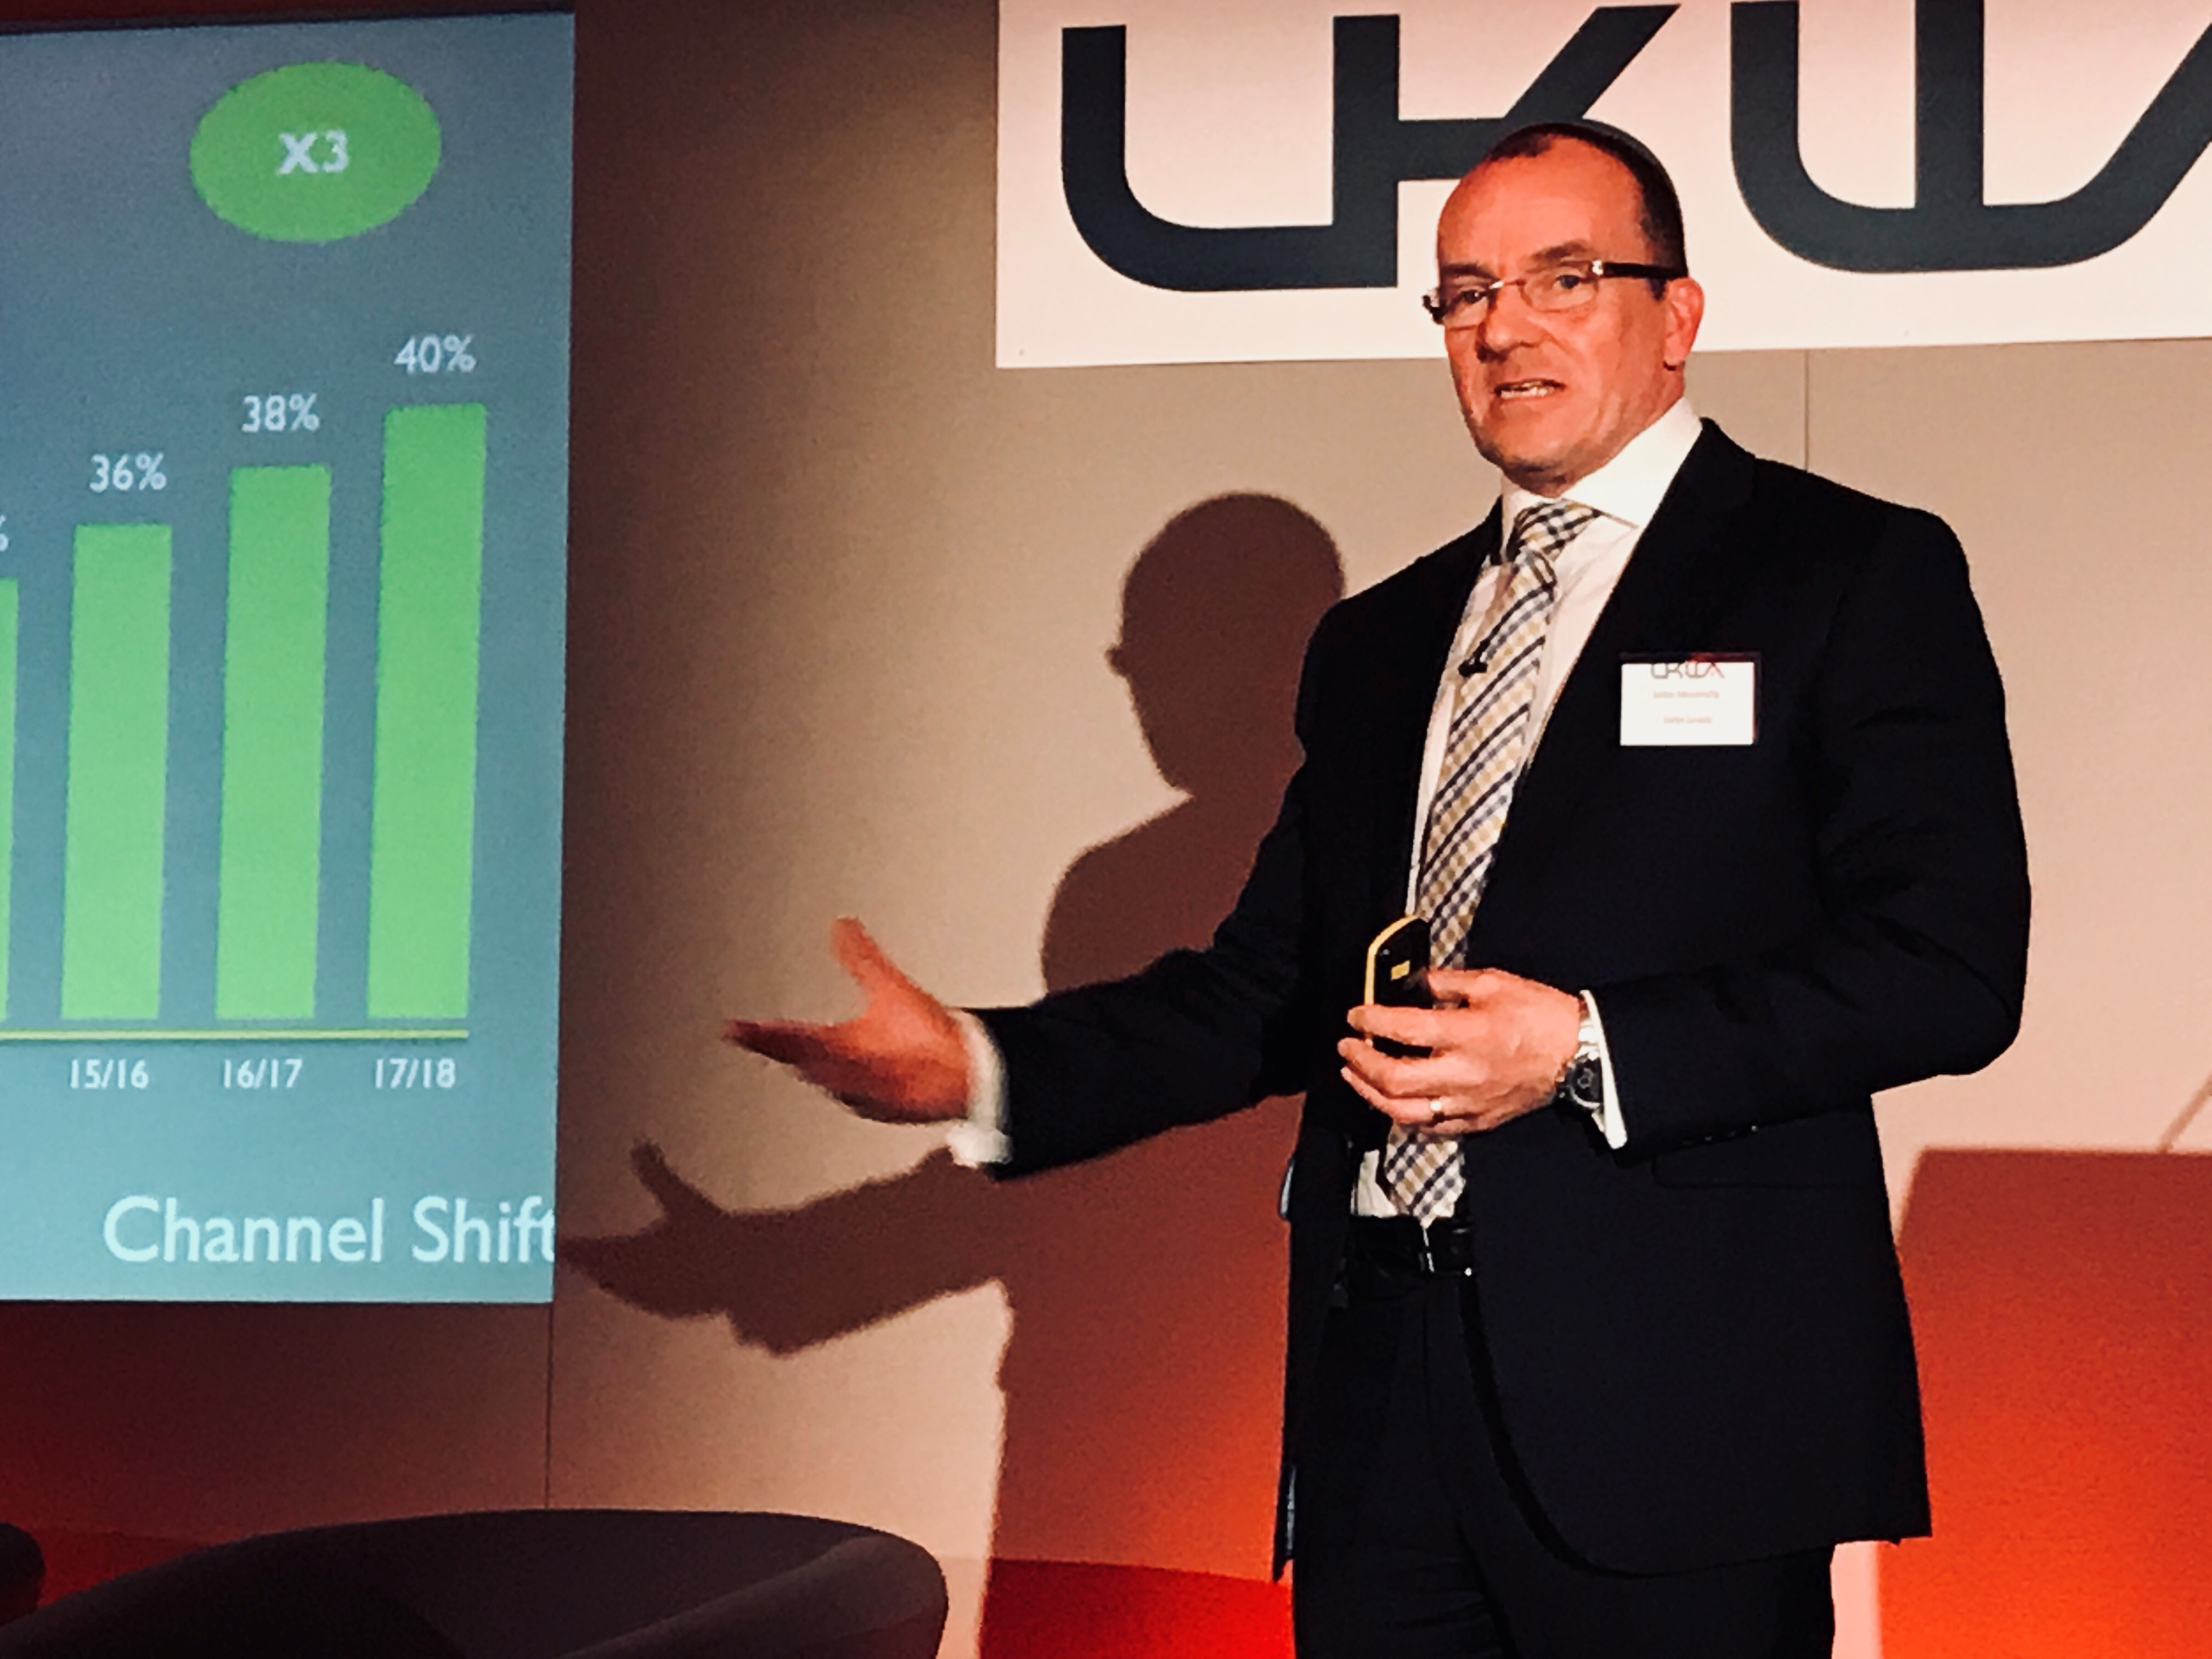 John Munnelly from John Lewis Partnership talks at the UKWA National Conference